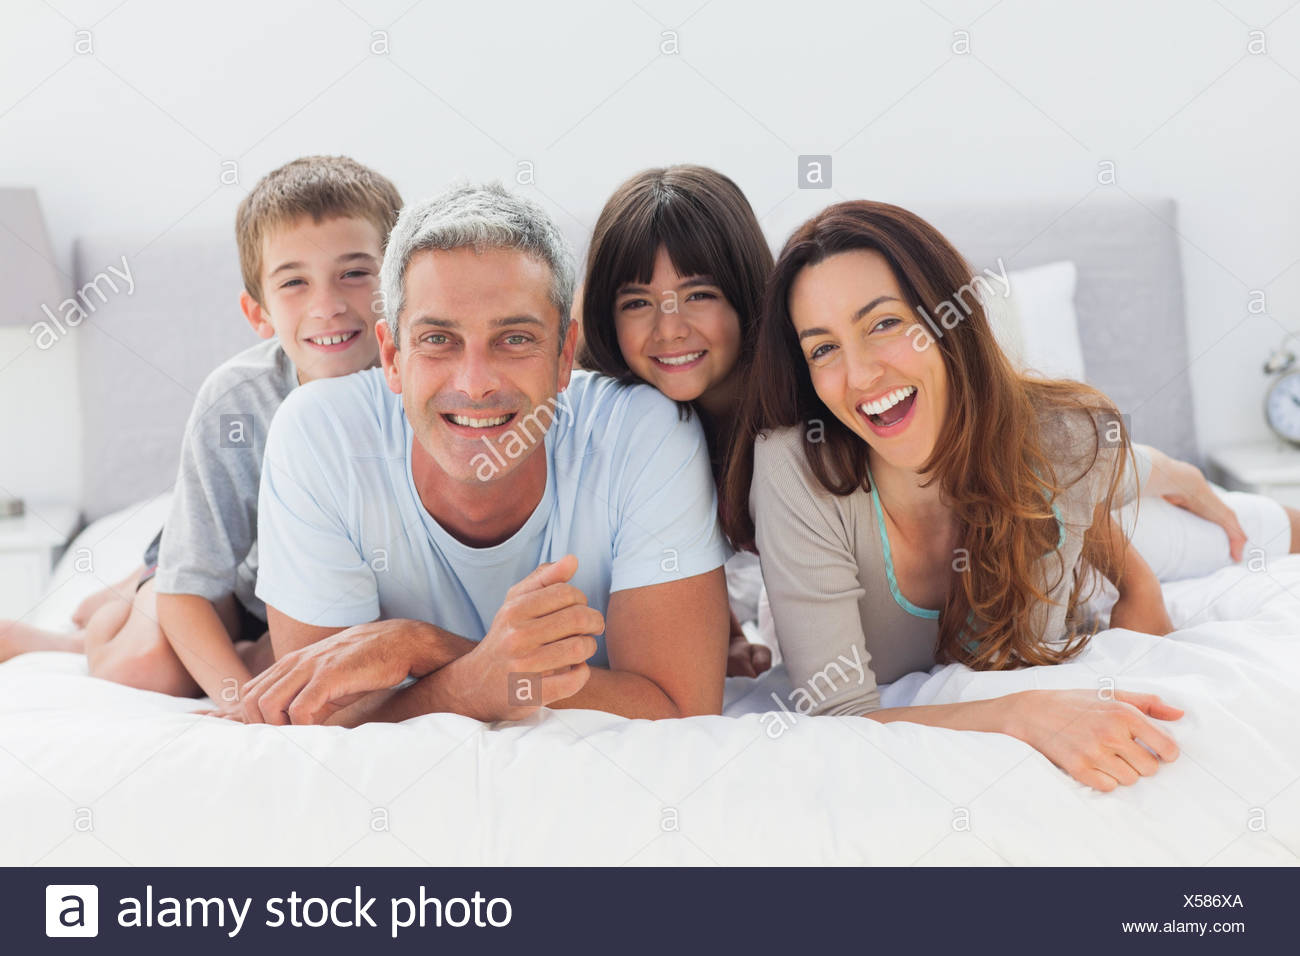 Happy Family lying together Photo Stock